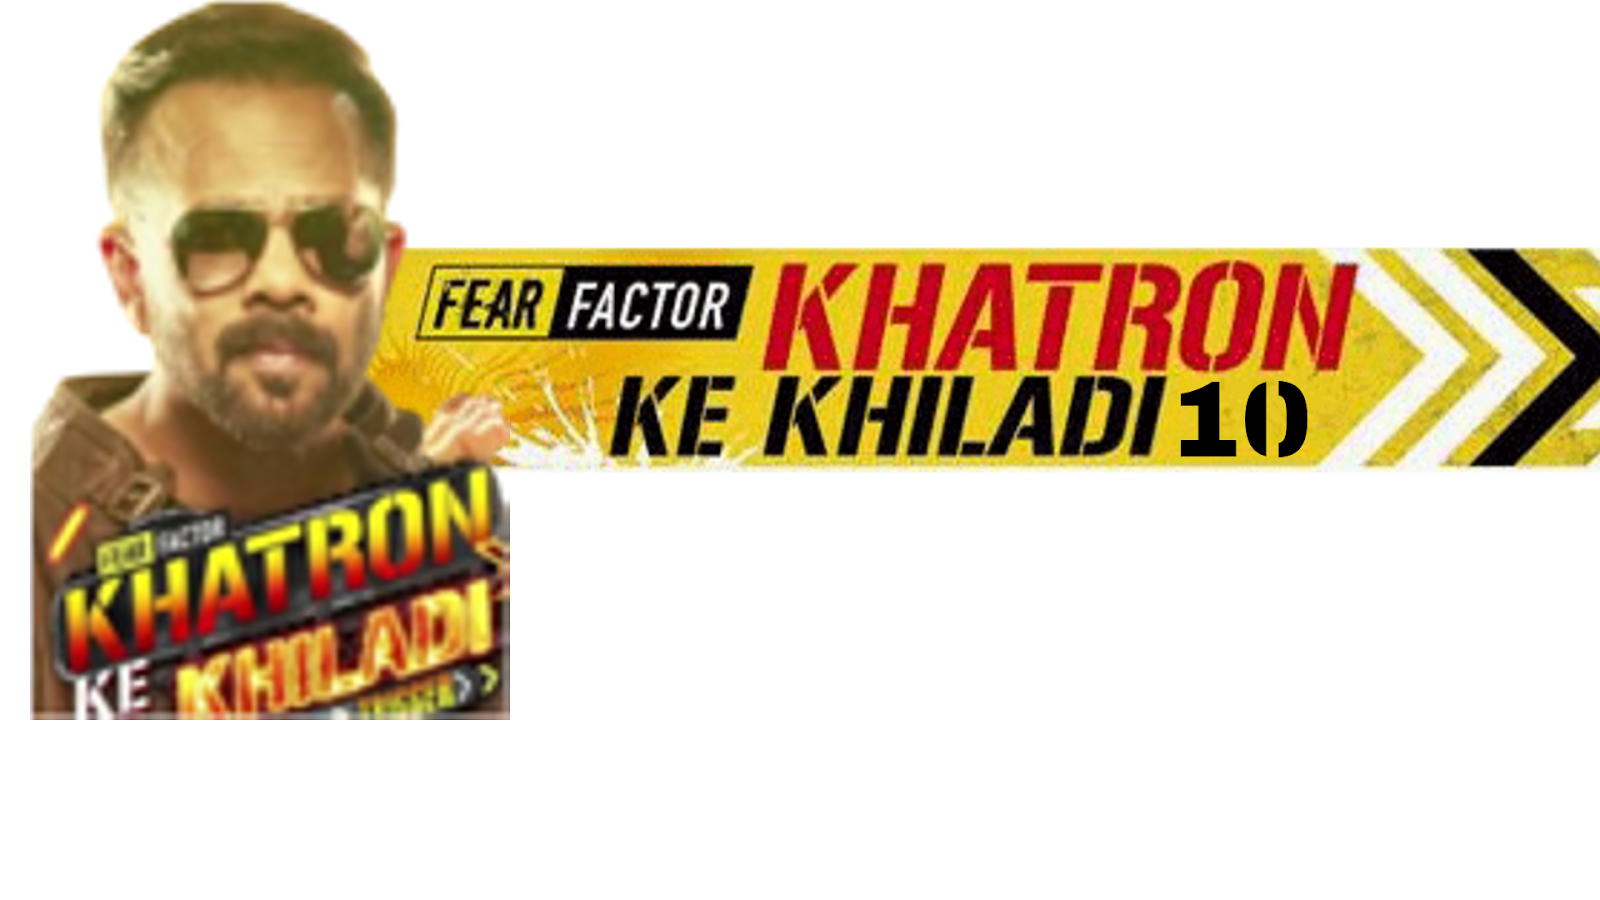 Khatron Ke Khiladi Season 10 Reality Show Watch All Episodes